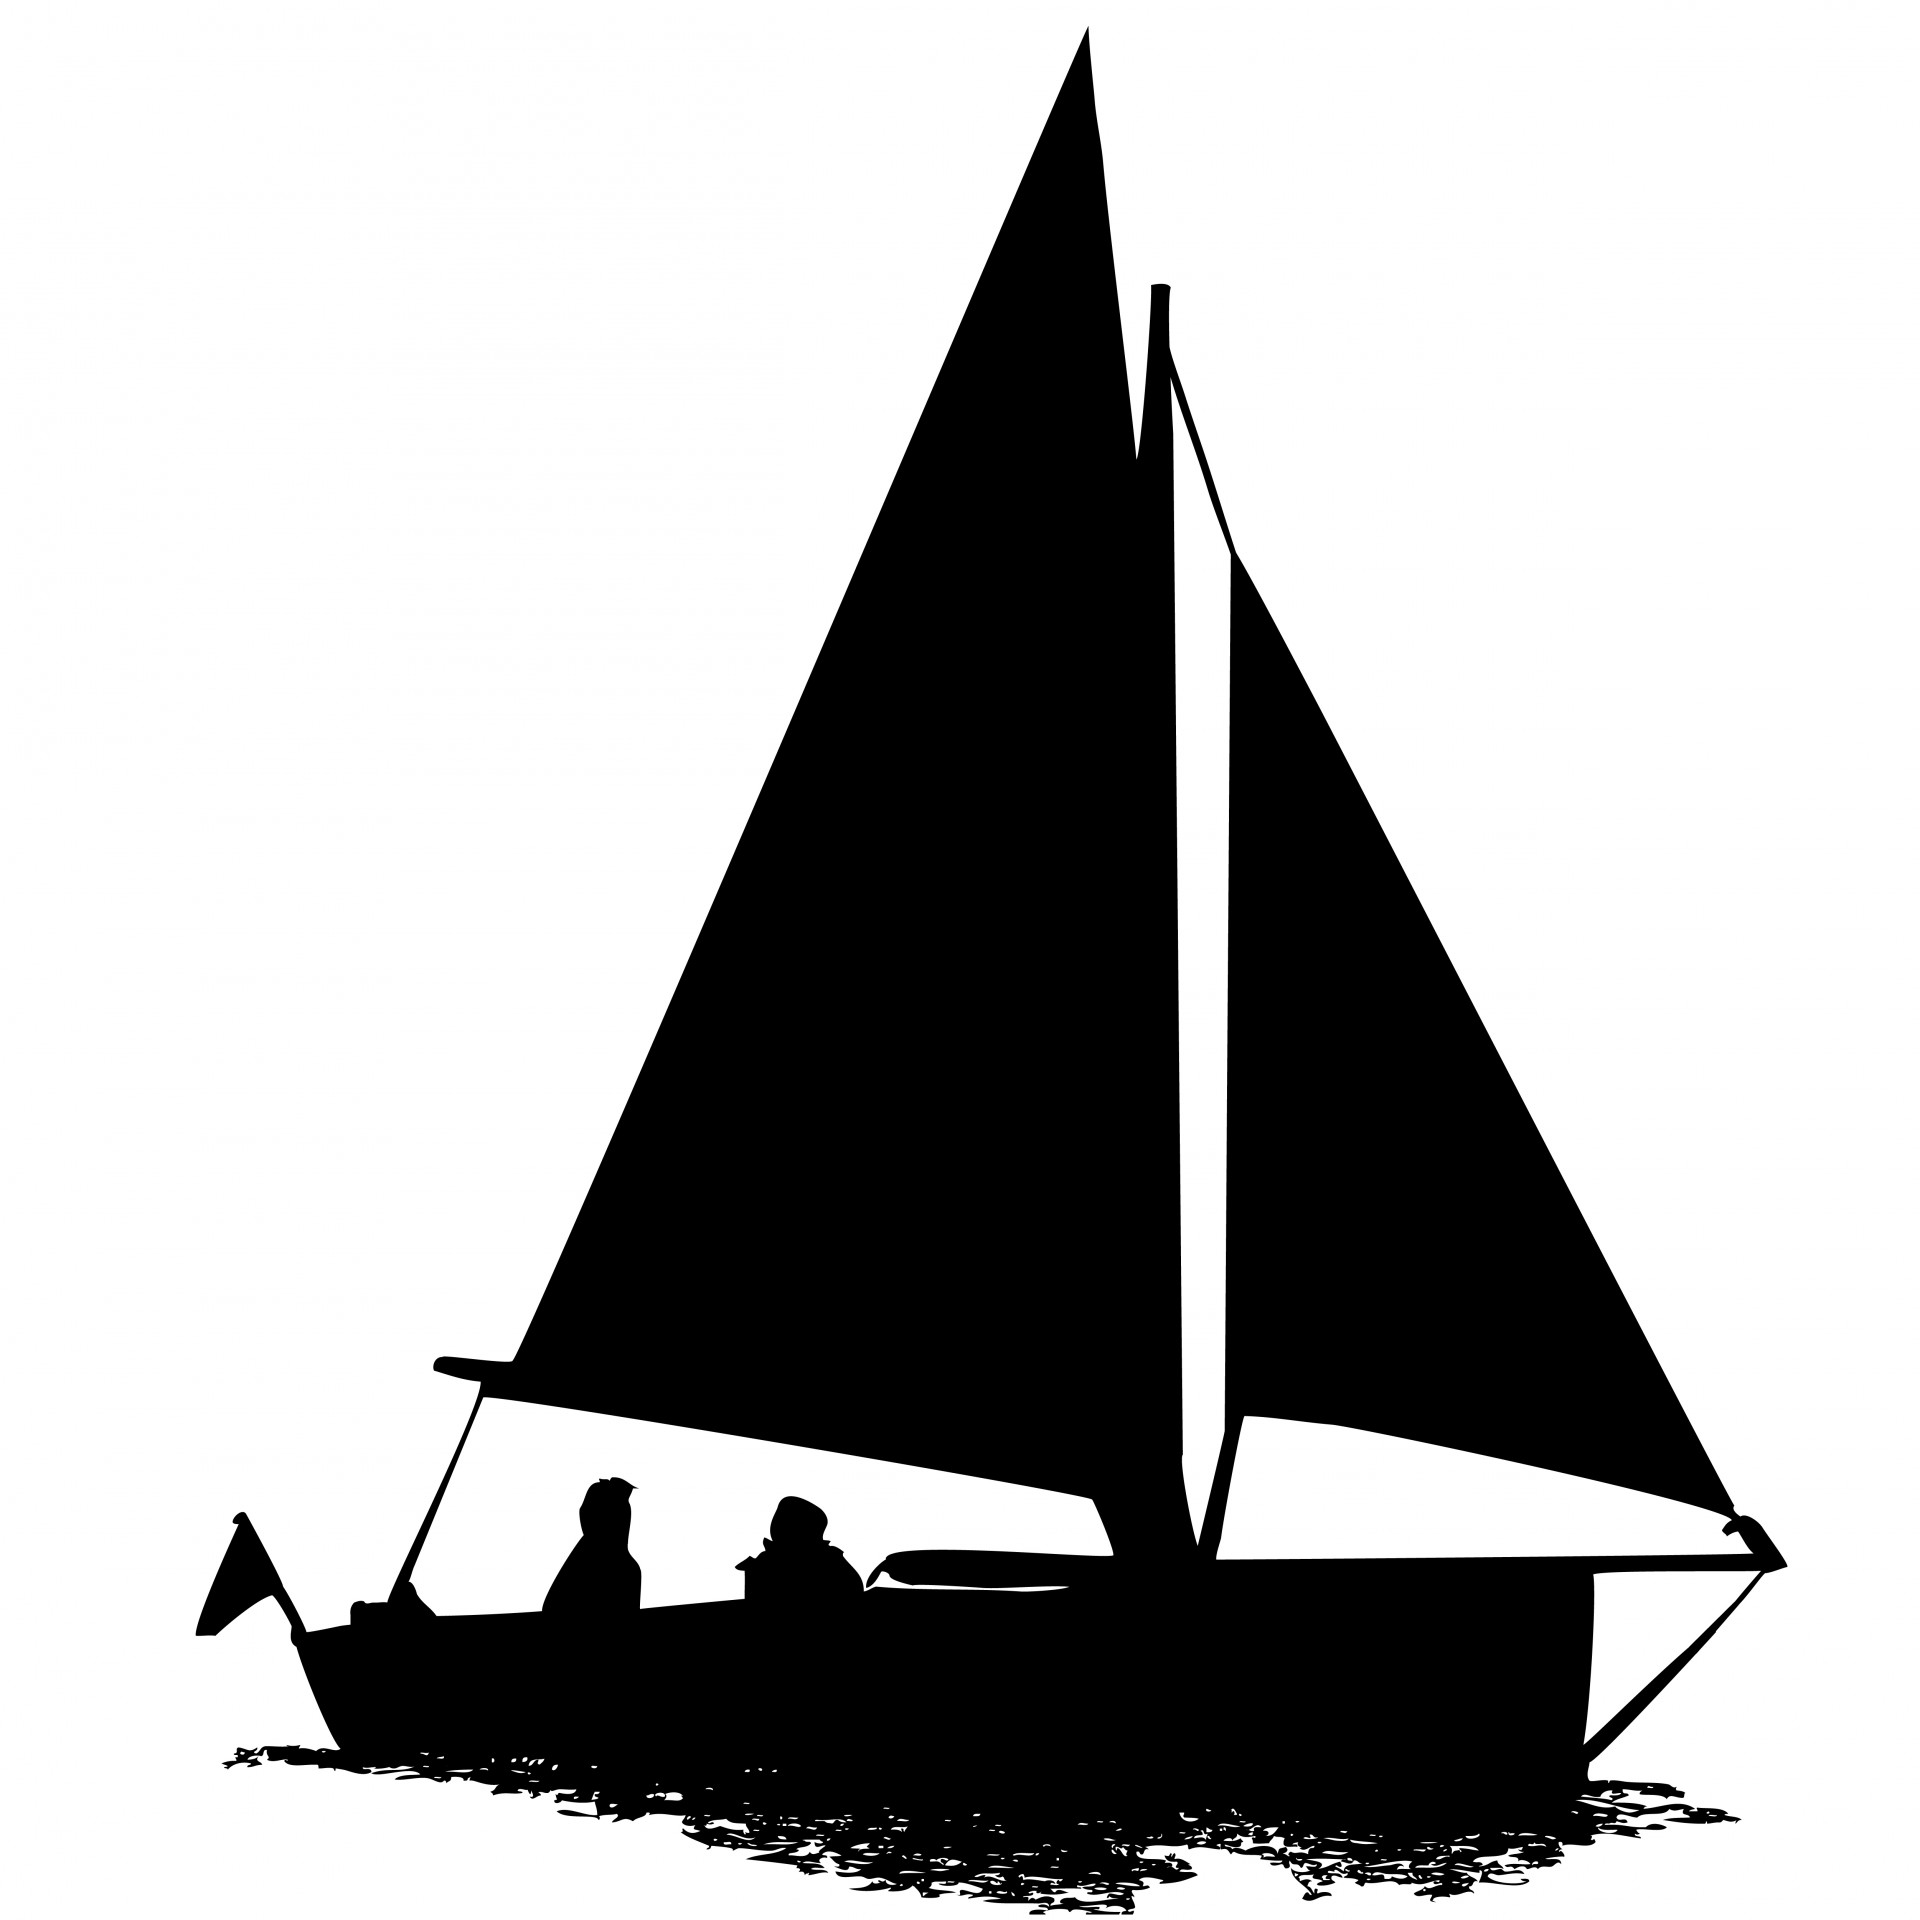 Boat clipart silhouette. Sailing free stock photo